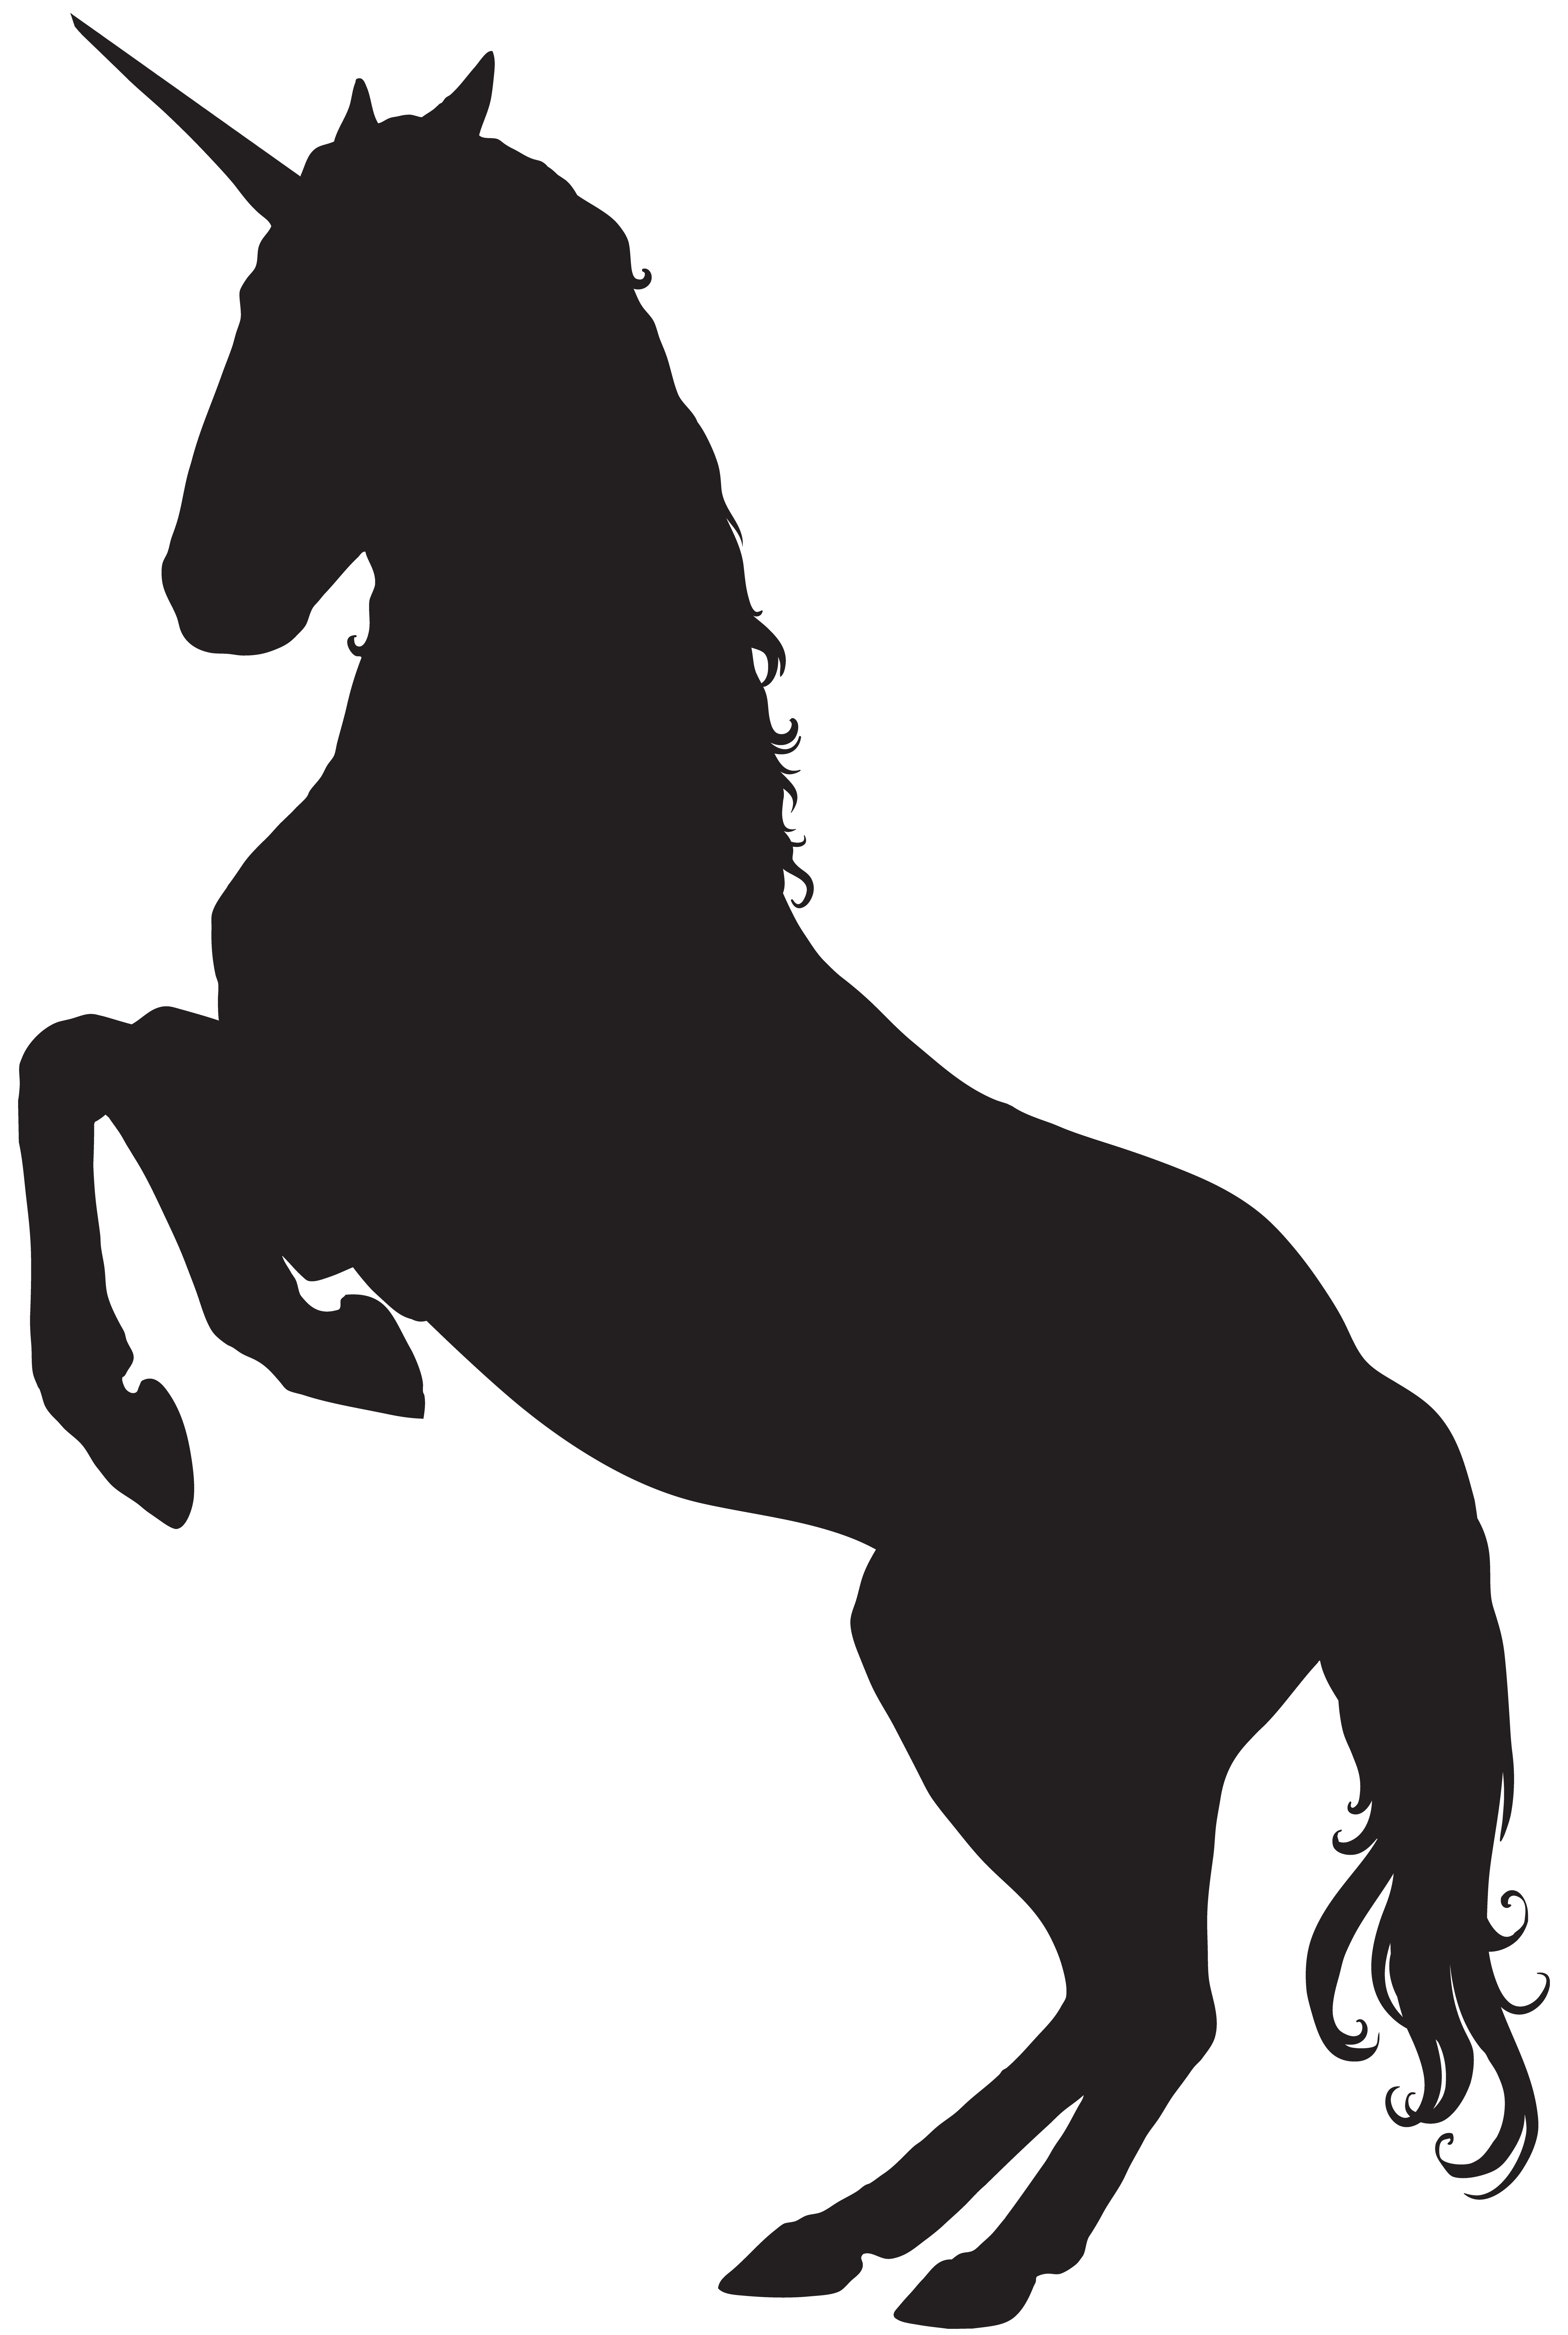 Unicorn Silhouette PNG Clip Art Image Silhouette png